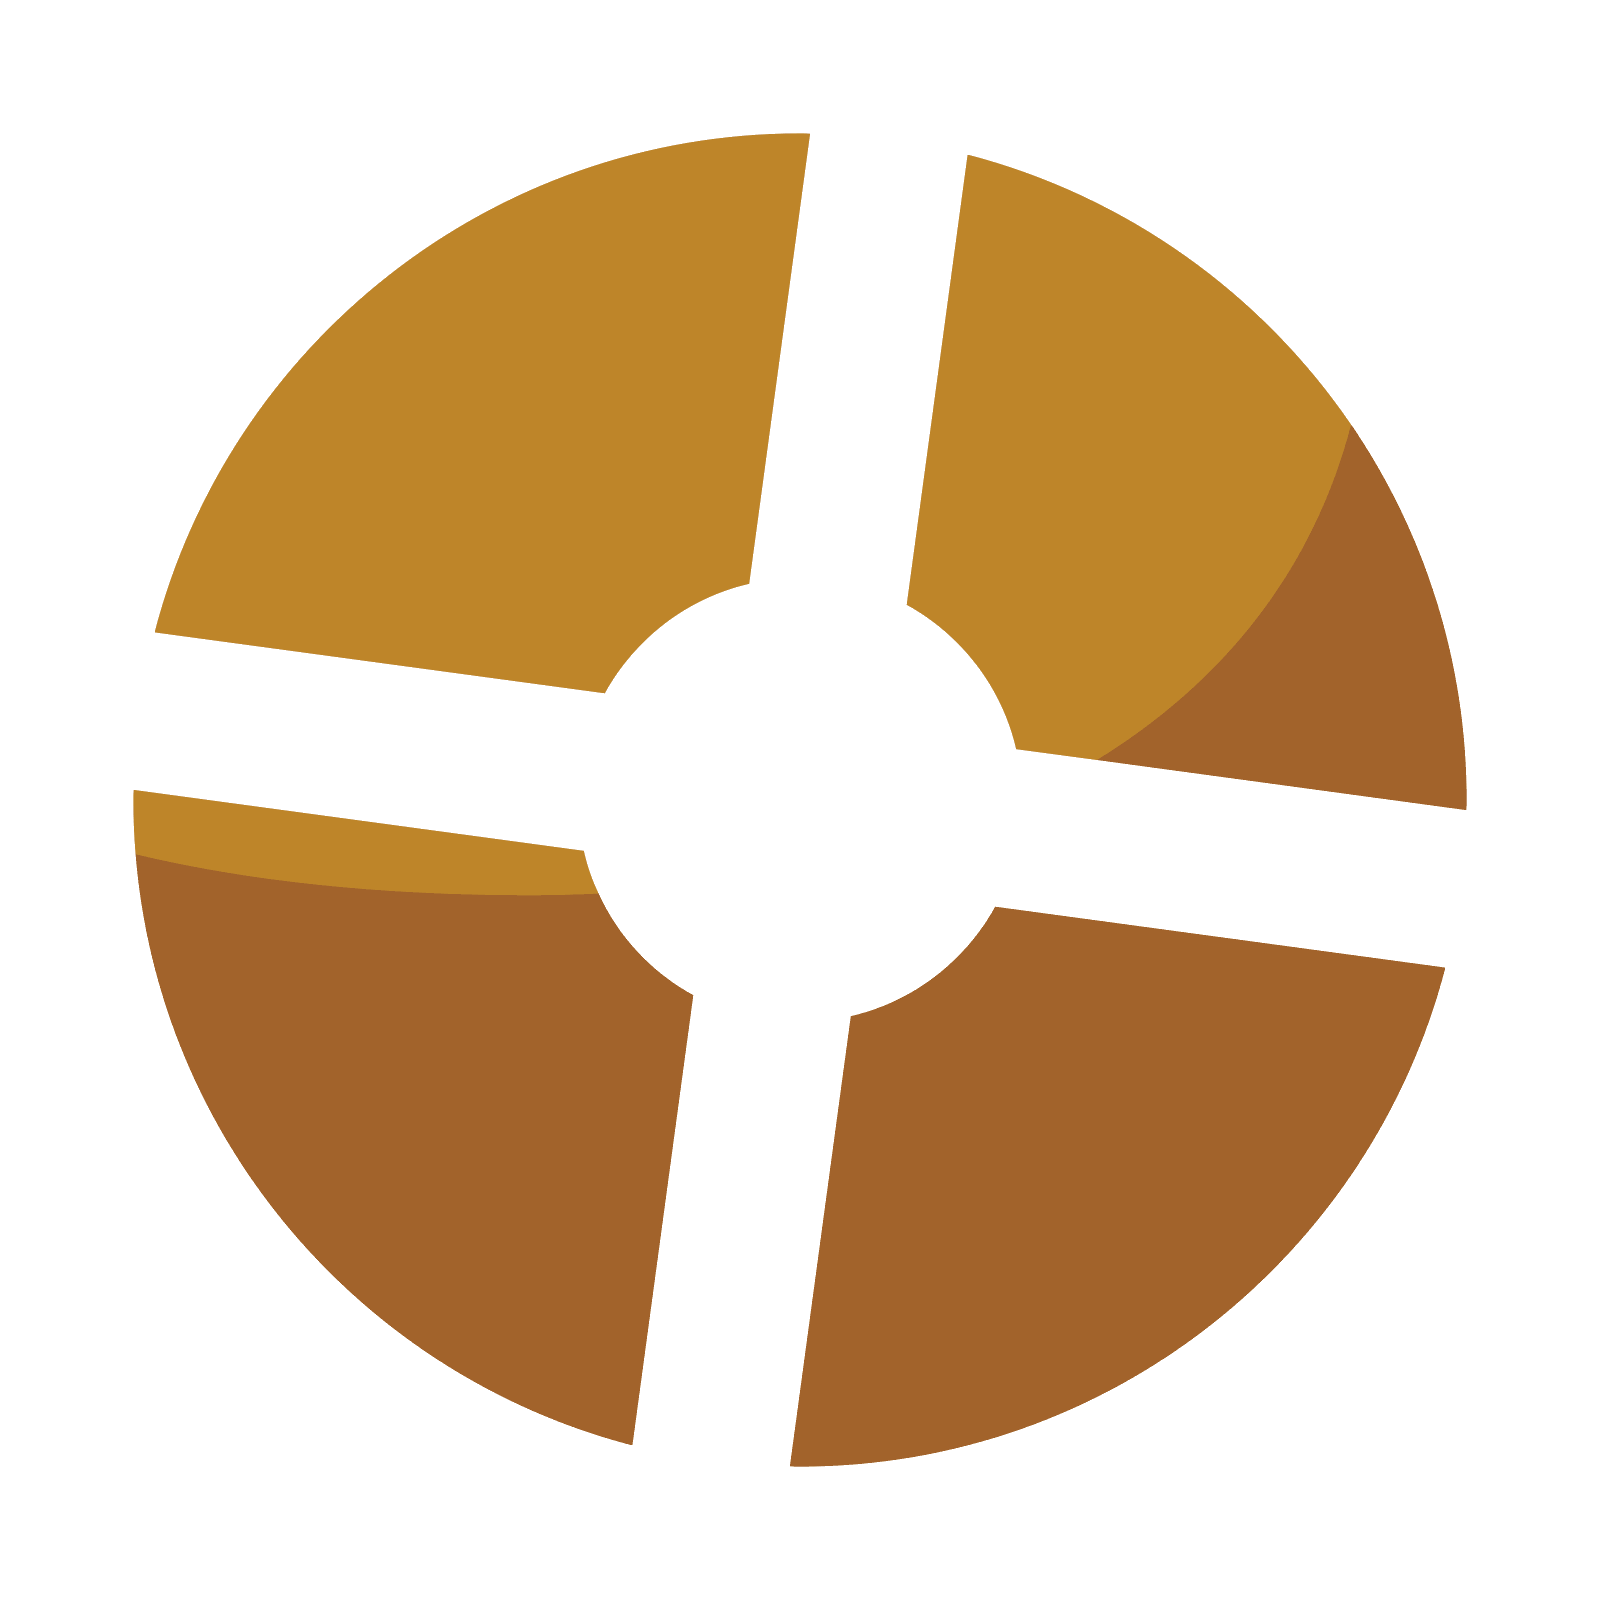 tf2 transparent icon